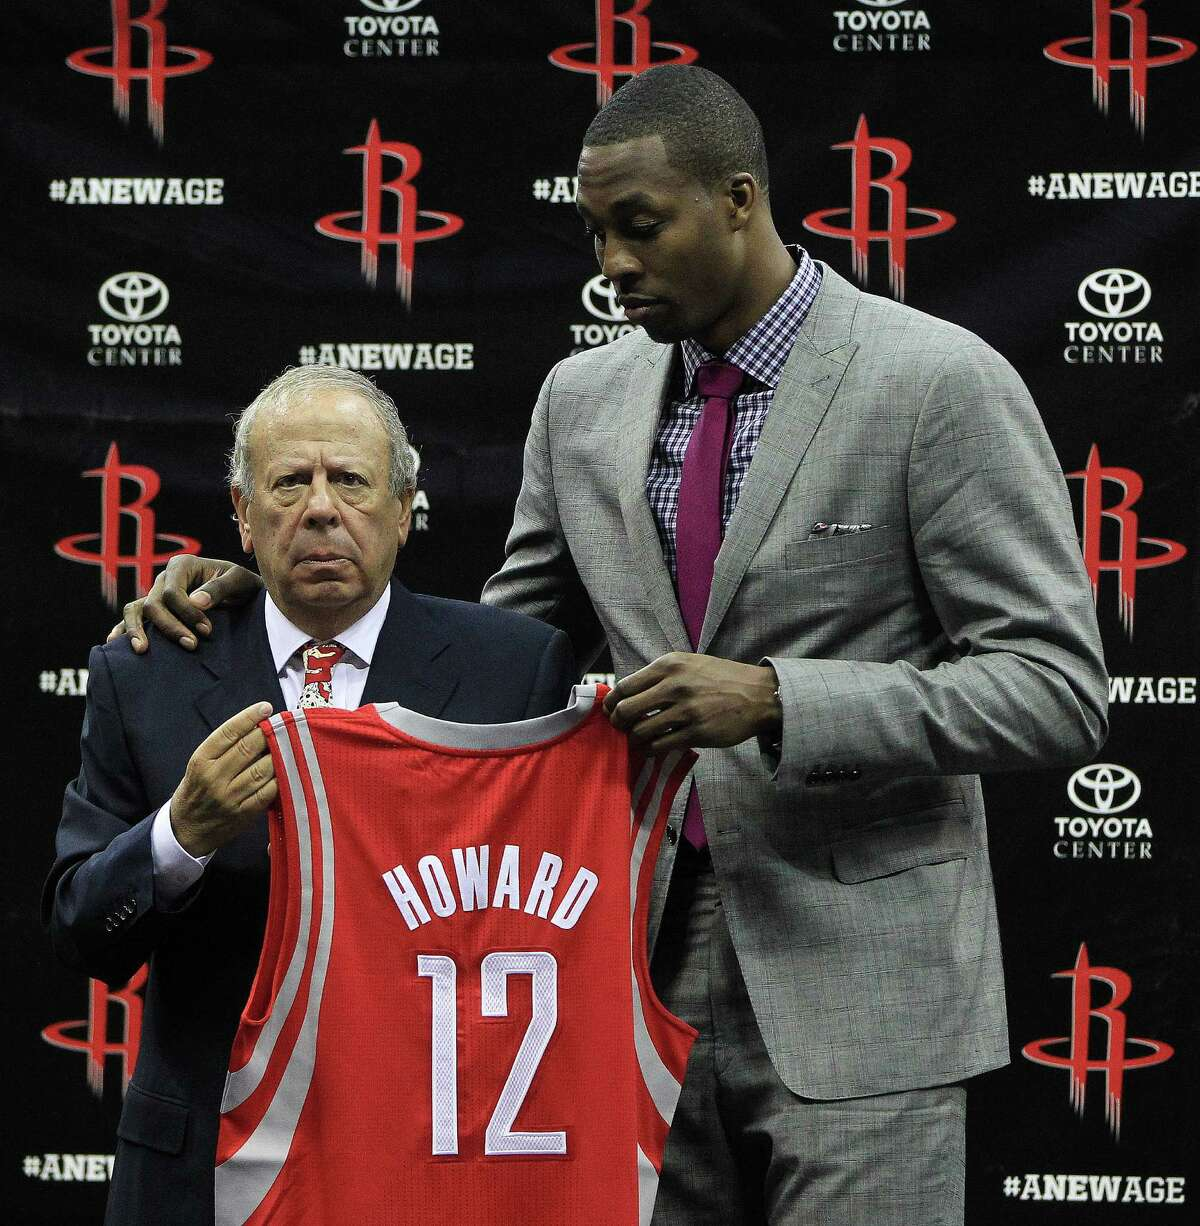 Houston Rockets owner Les Alexander holds Dwight Howard's jersey with Dwight Howard during the press conference and welcoming ceremony for Dwight Howard, Saturday, July 13, 2013, in Houston. ( Karen Warren / Houston Chronicle )